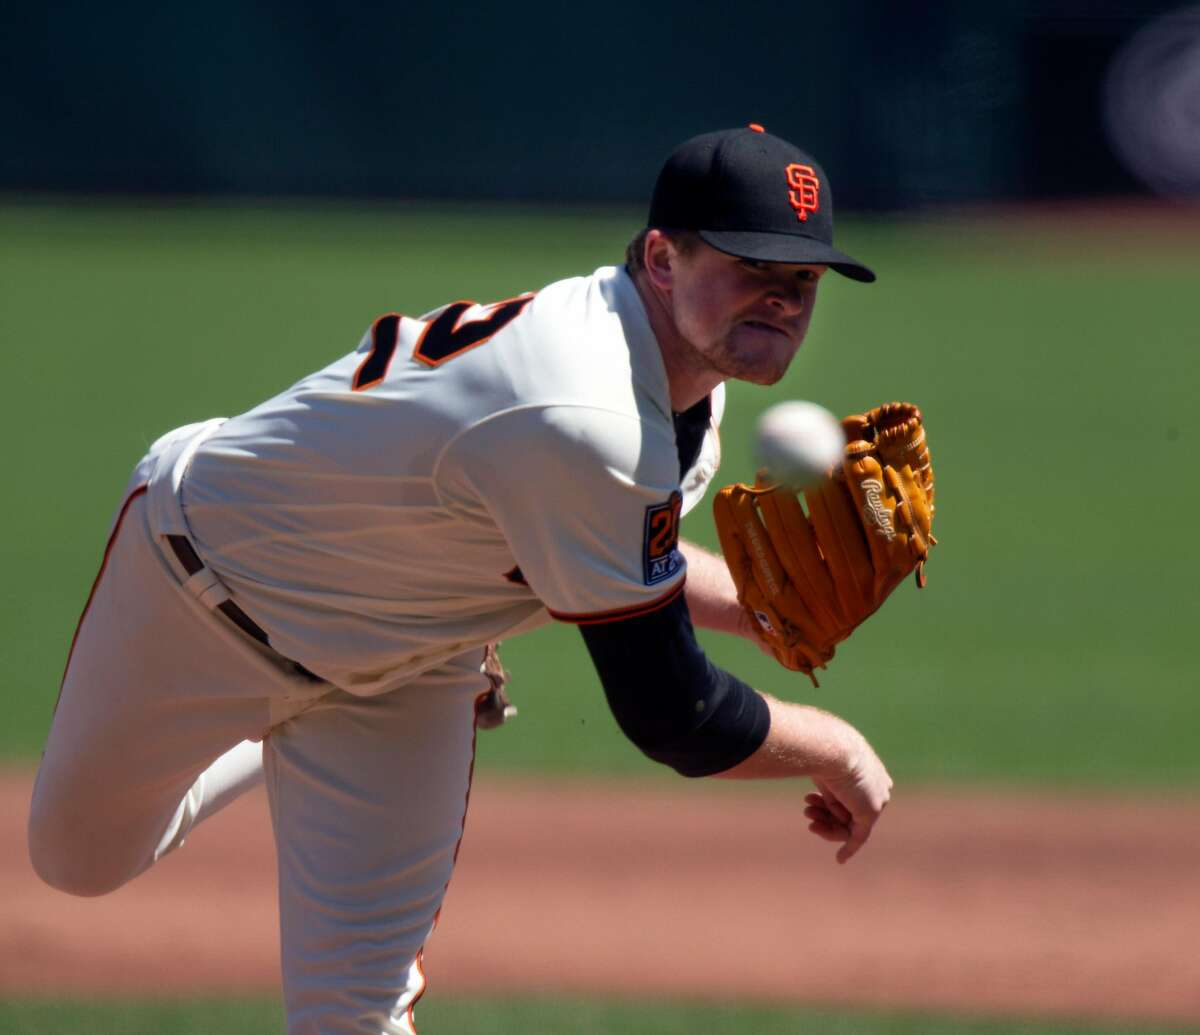 San Francisco Giants starting pitcher Logan Webb (62) delivers a pitch against the Los Angeles Dodgers during the second inning of a baseball game on Thursday, Aug. 27, 2020 in San Francisco, Calif.